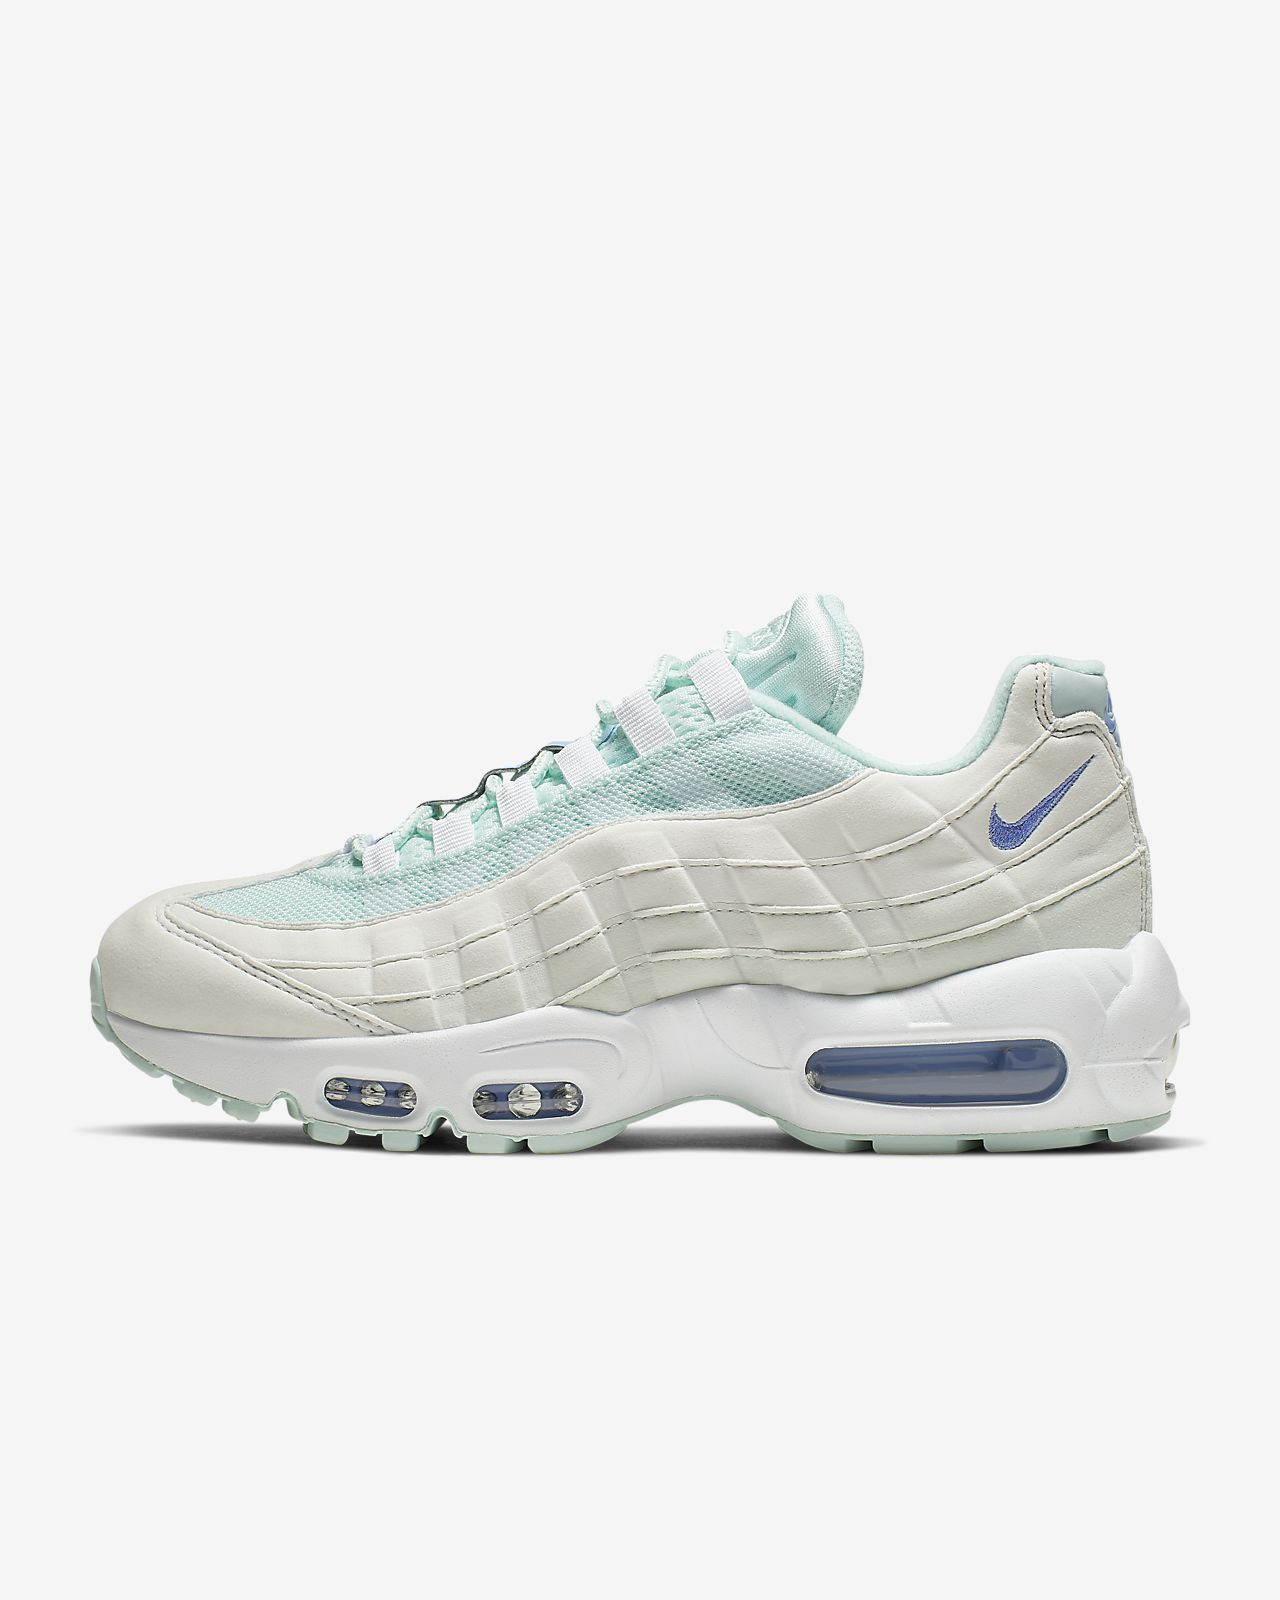 9f8e15fea Nike Air Max 95 Women's Shoe. Nike.com